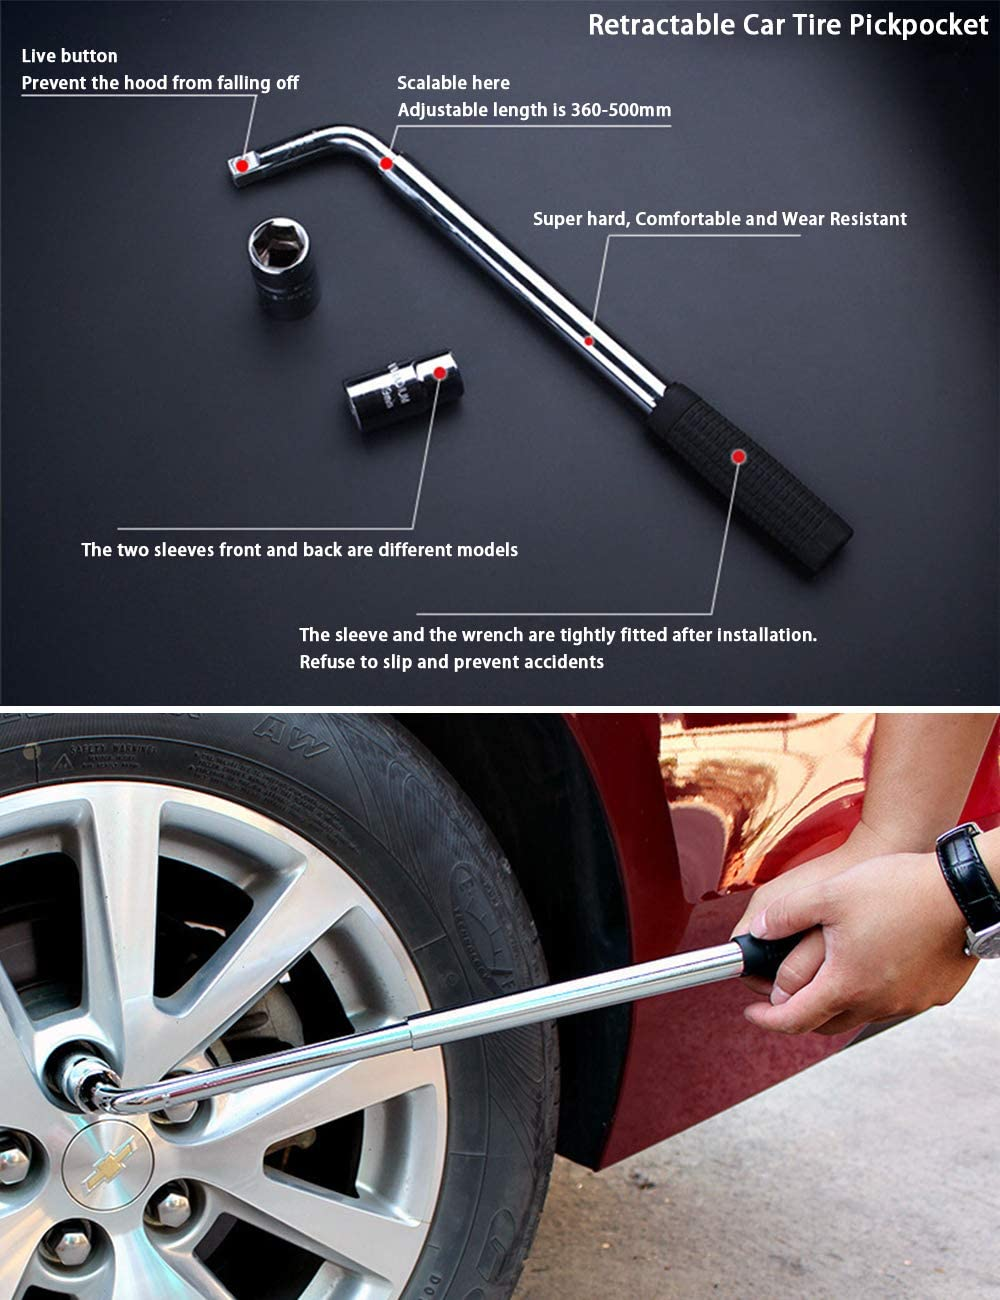 21//23mm Zhhlinyuan Telescopic Lug Wrench Wheel Wrench Extendable Wheel Brace Sleeves Repair Tool for Car Van Truck Spare Tyre Breakdown Emergency Tools Tyre Change Garage Tools 17//19